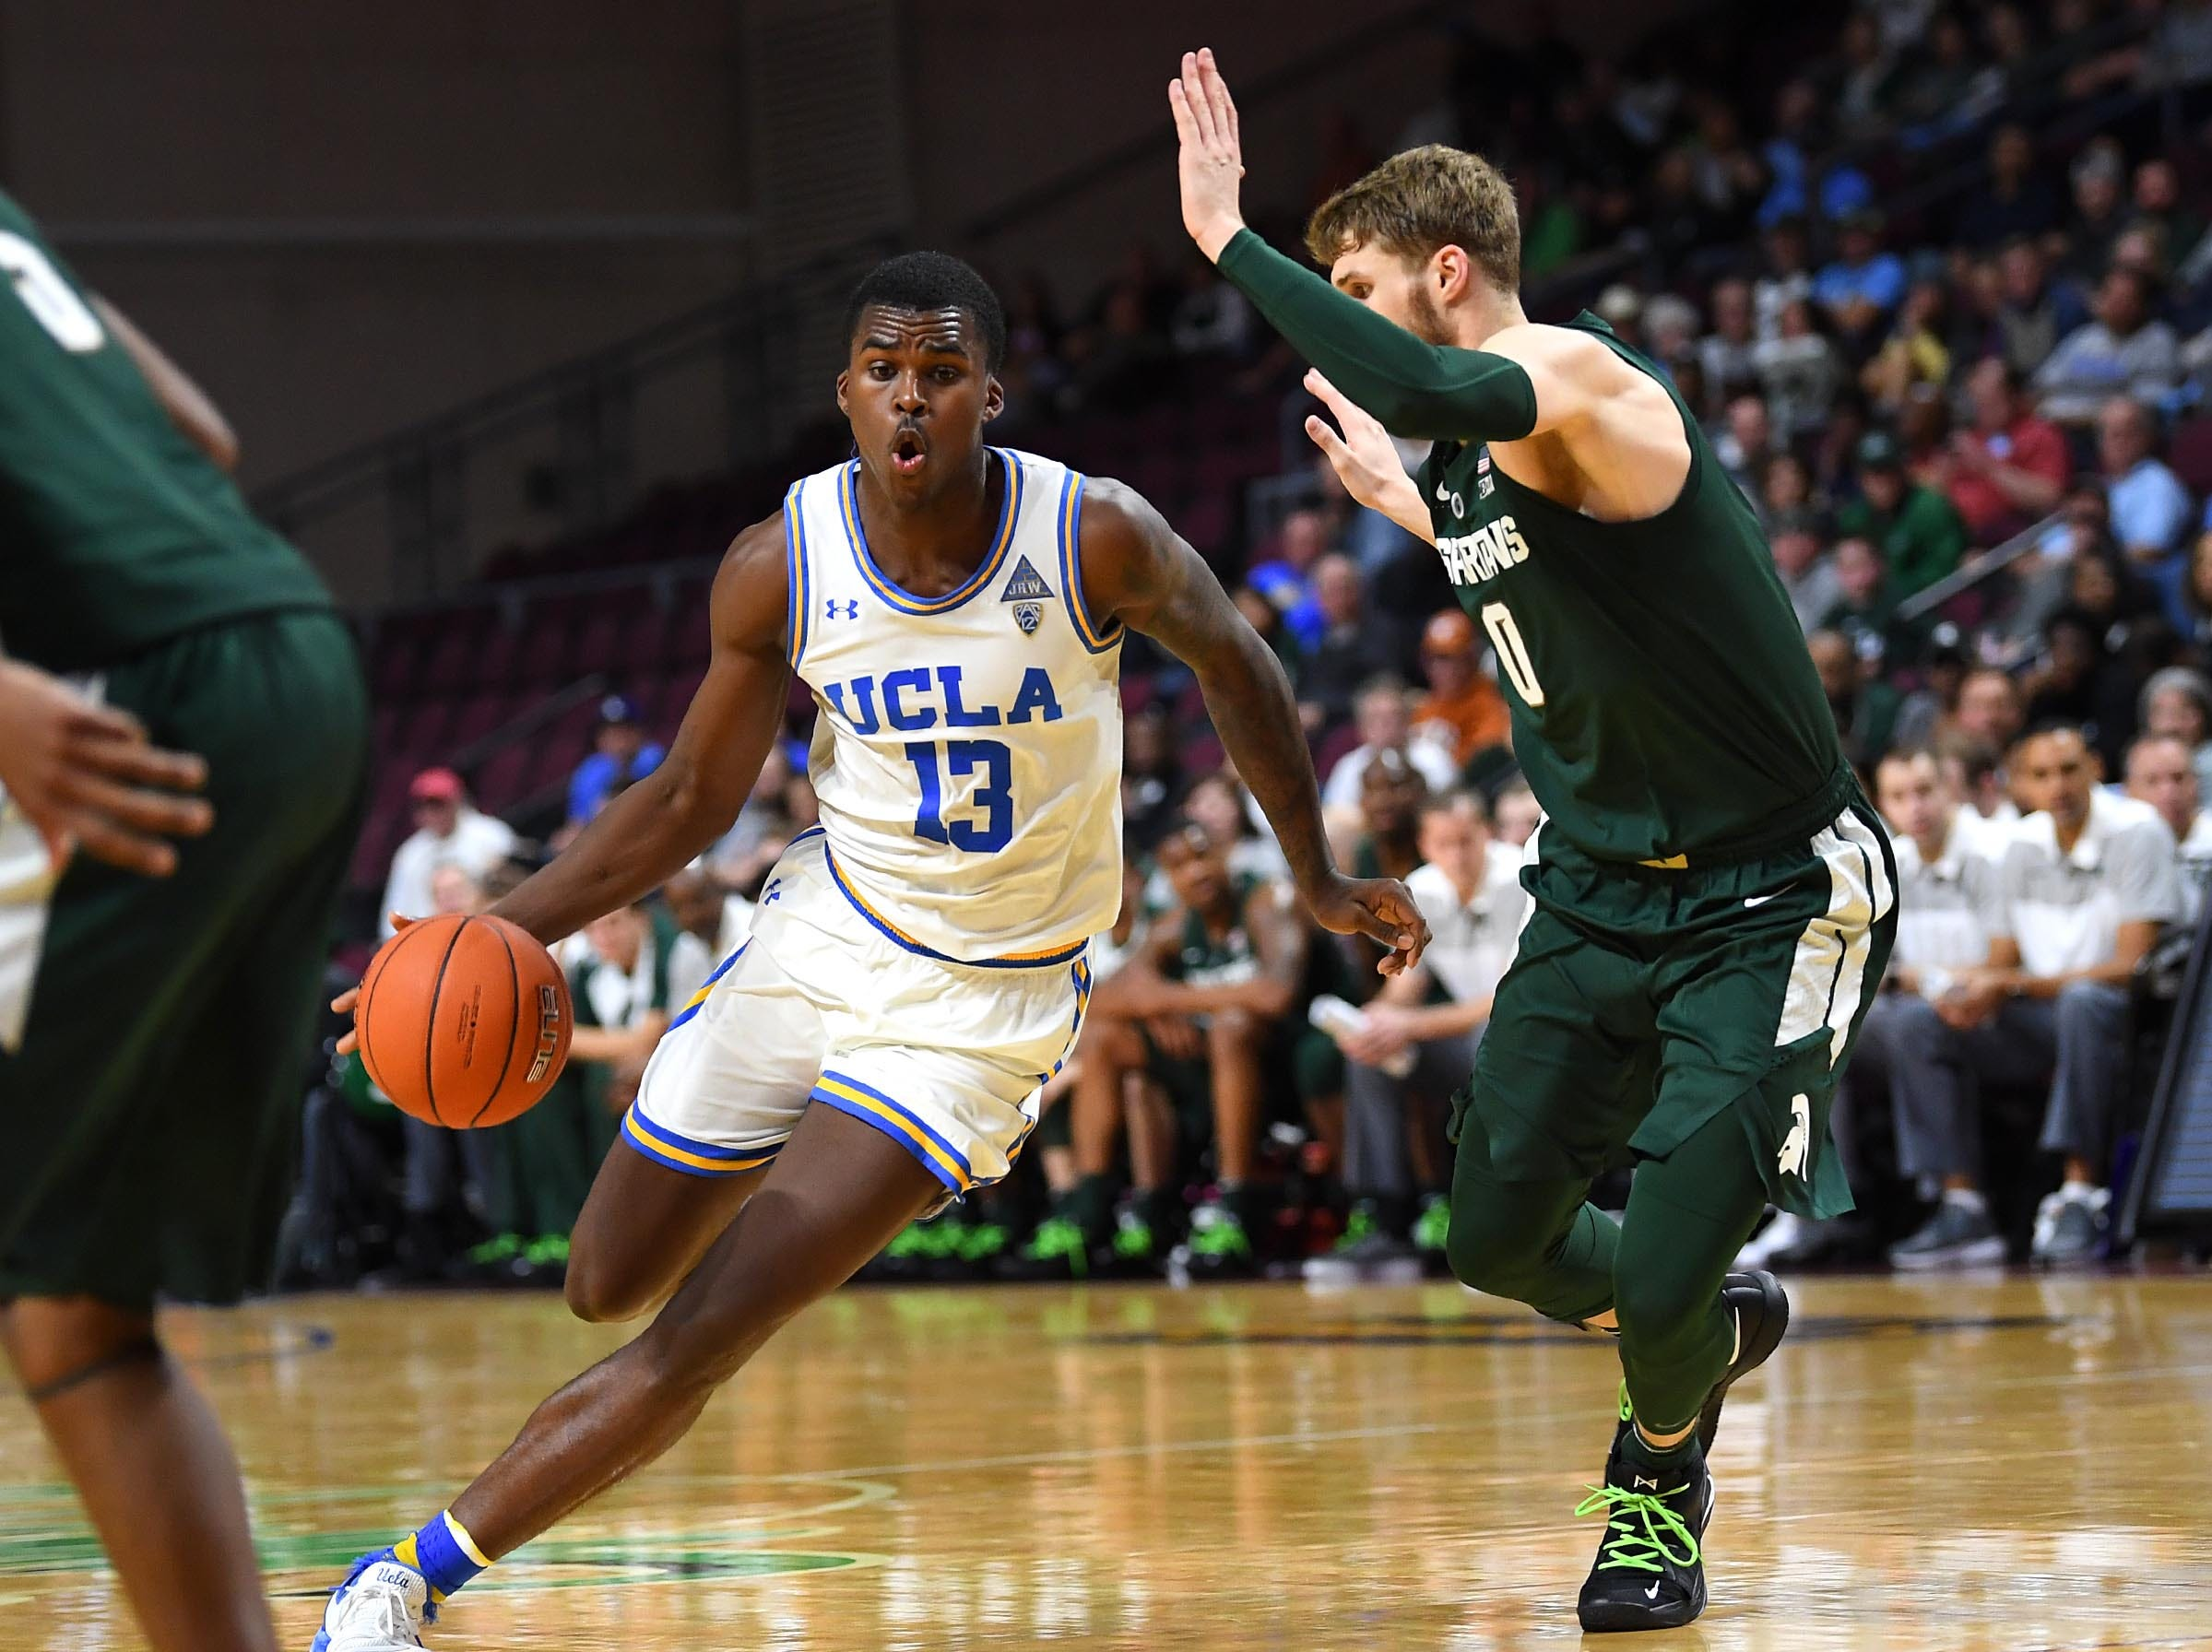 Nov 22, 2018; Las Vegas, NV, USA; UCLA Bruins guard Kris Wilkes (13) dribbles against Michigan State Spartans forward Kyle Ahrens (0) during the second half at Orleans Arena. Mandatory Credit: Stephen R. Sylvanie-USA TODAY Sports